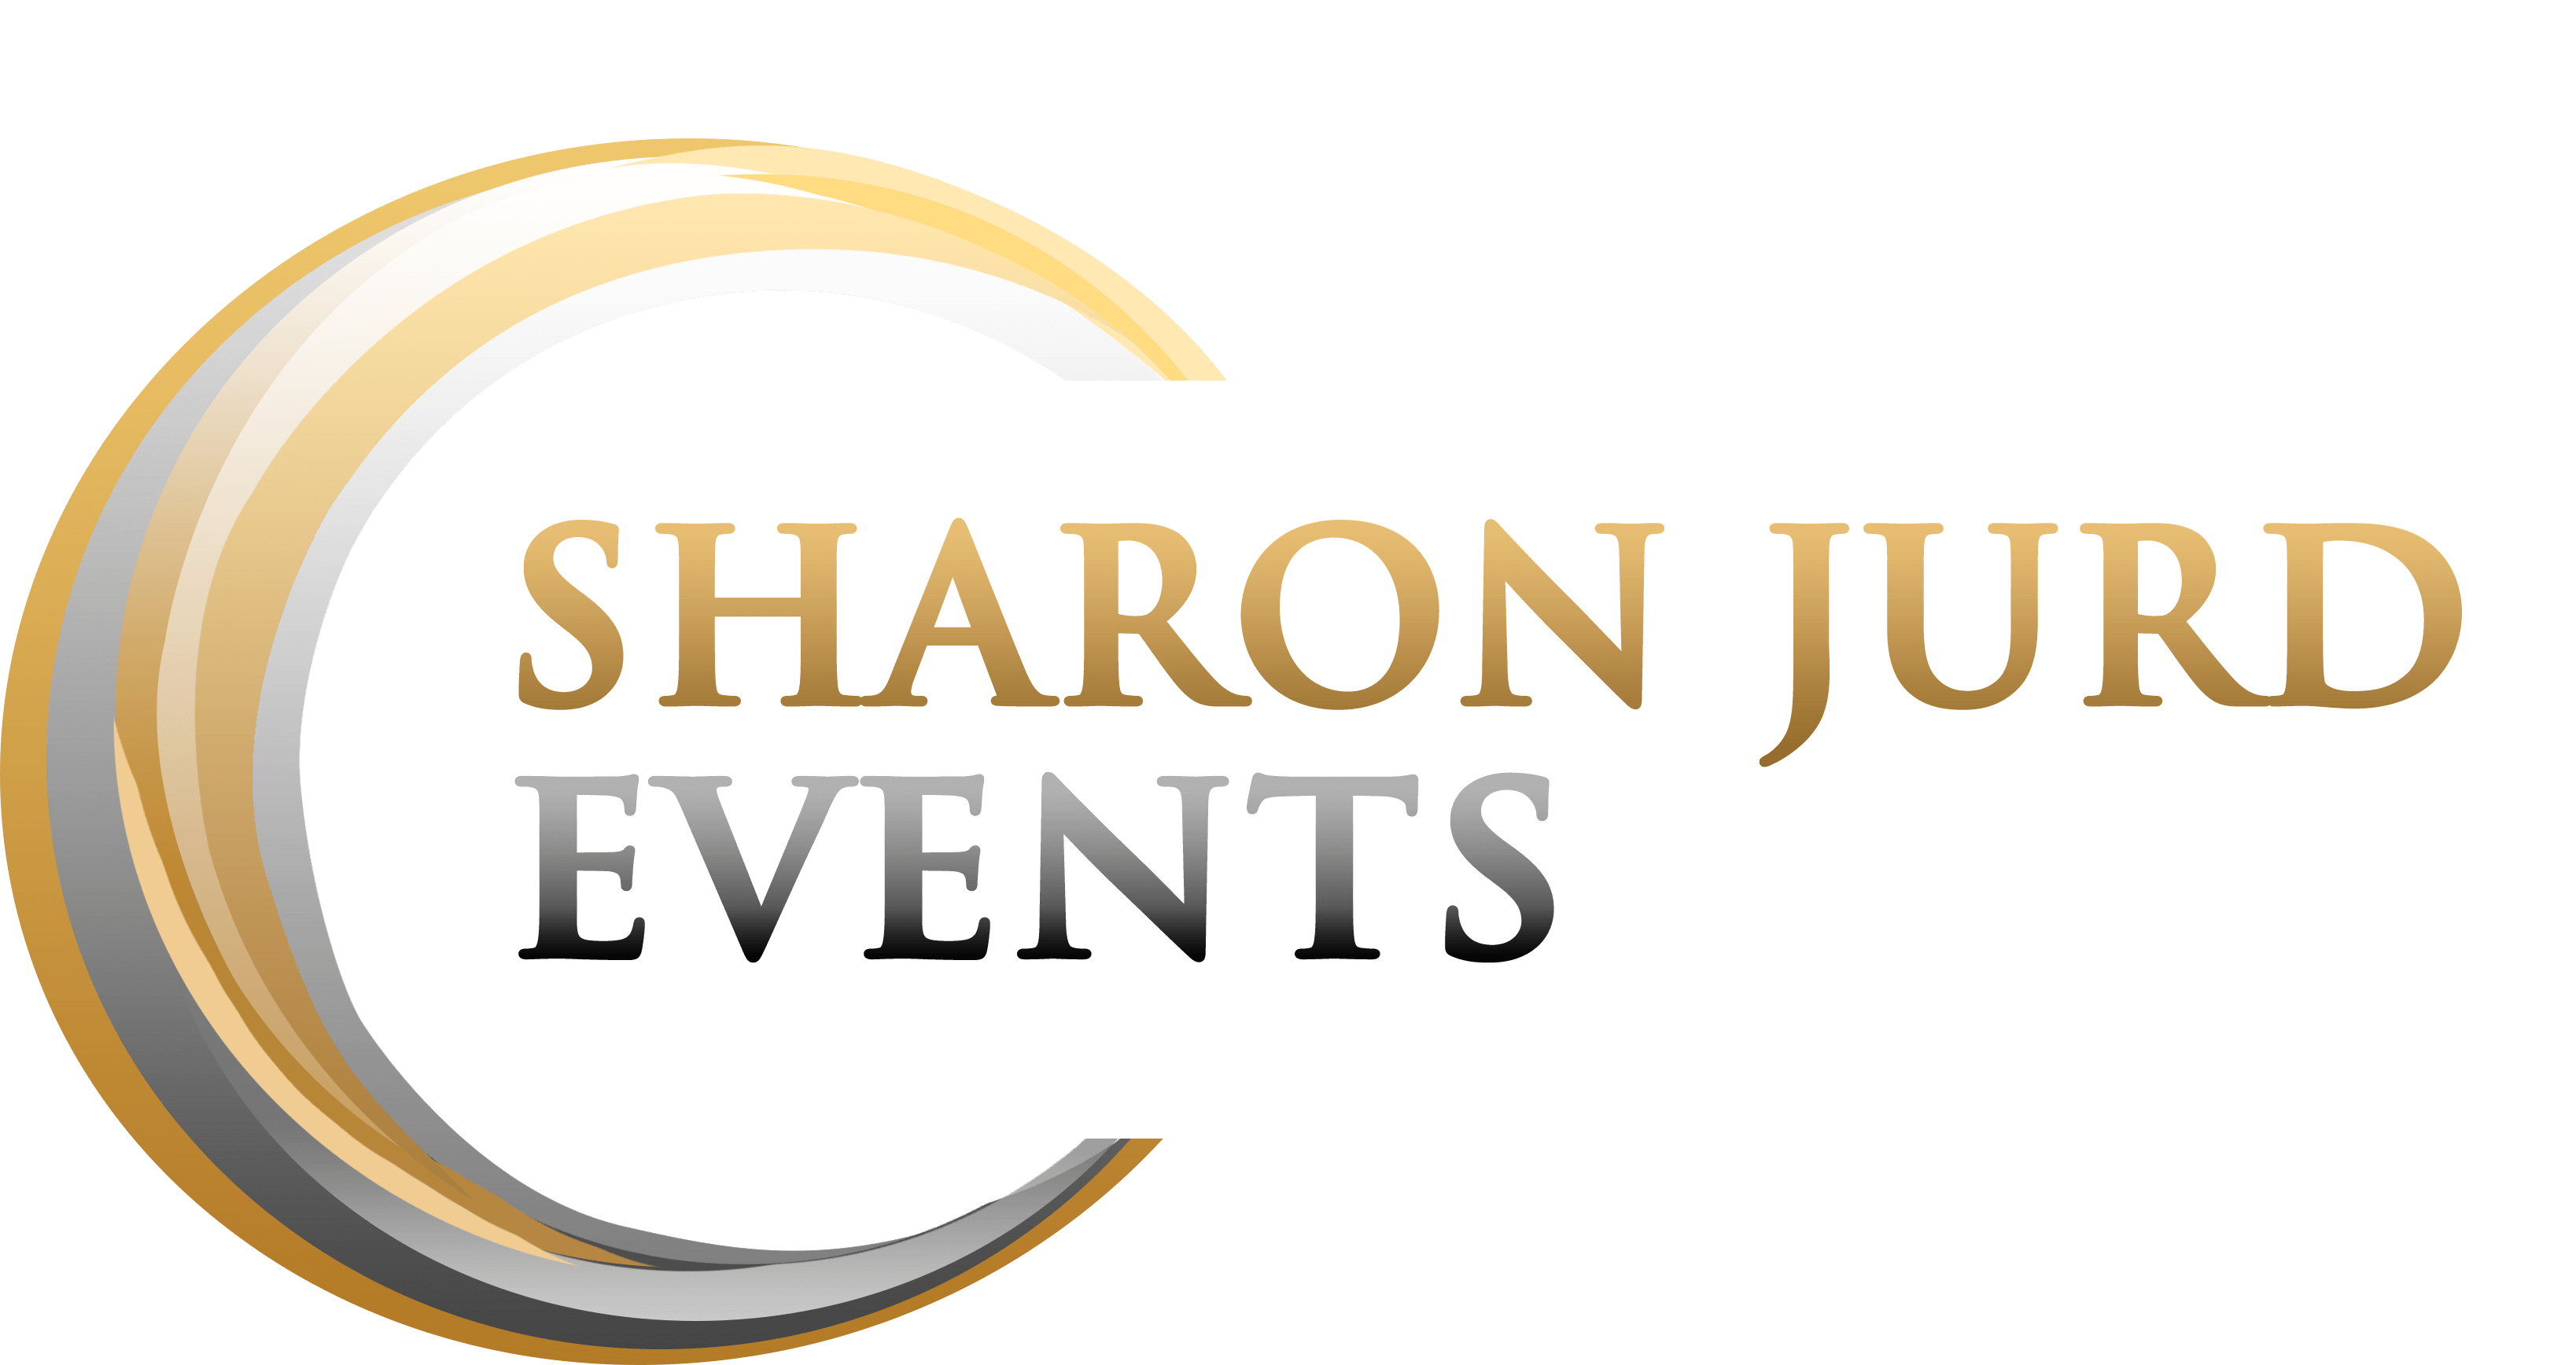 Sharon Jurd Events